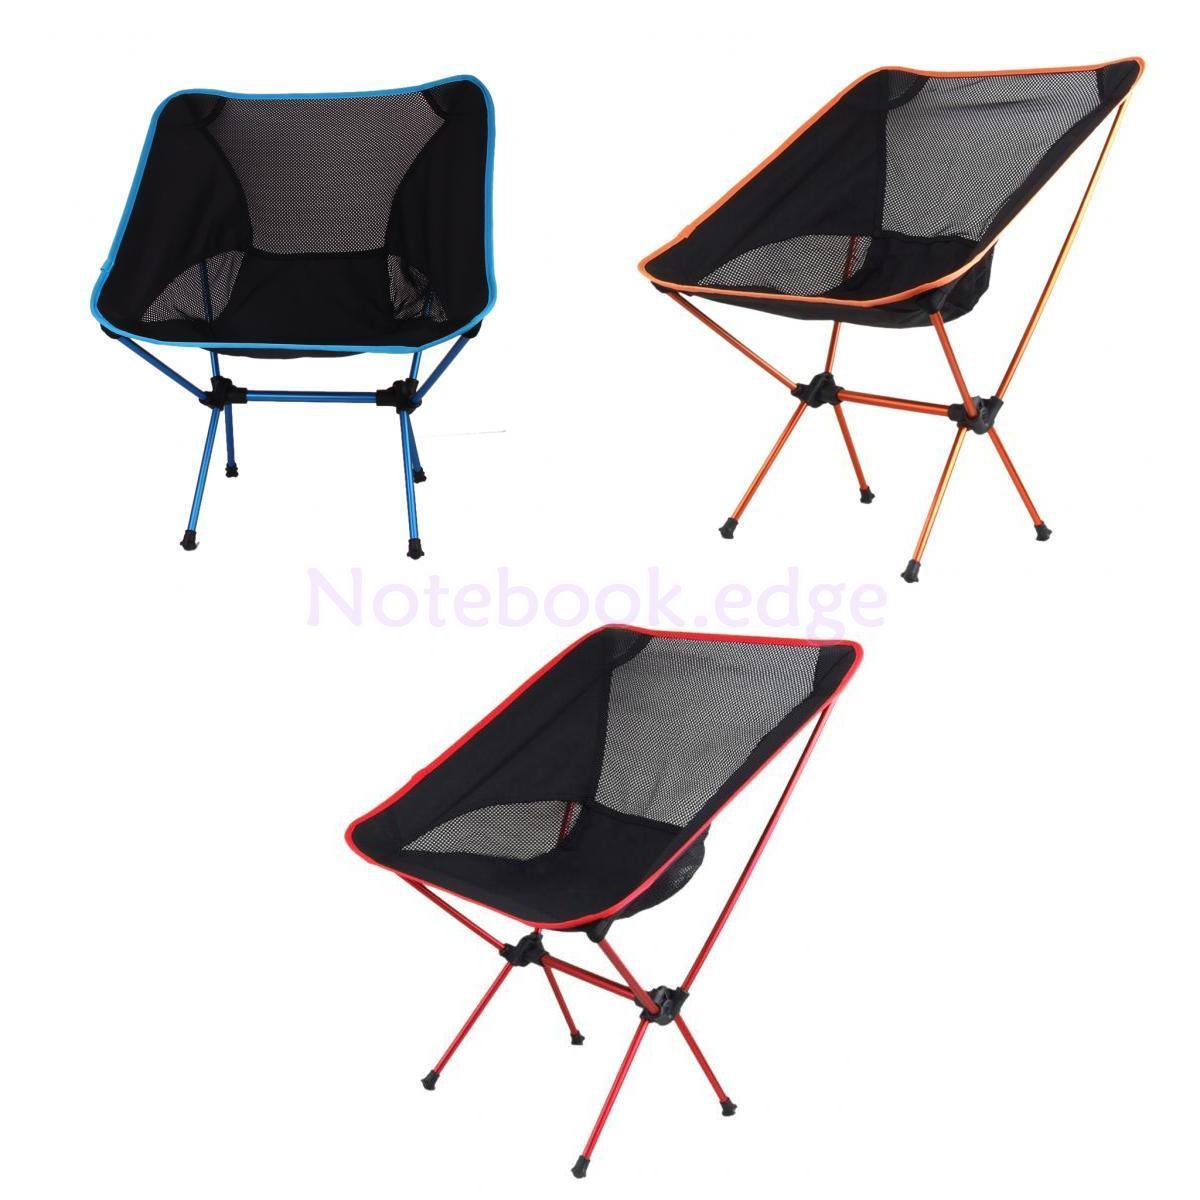 vision fishing chair bedroom with cushion portable fold up folding seat stool camping